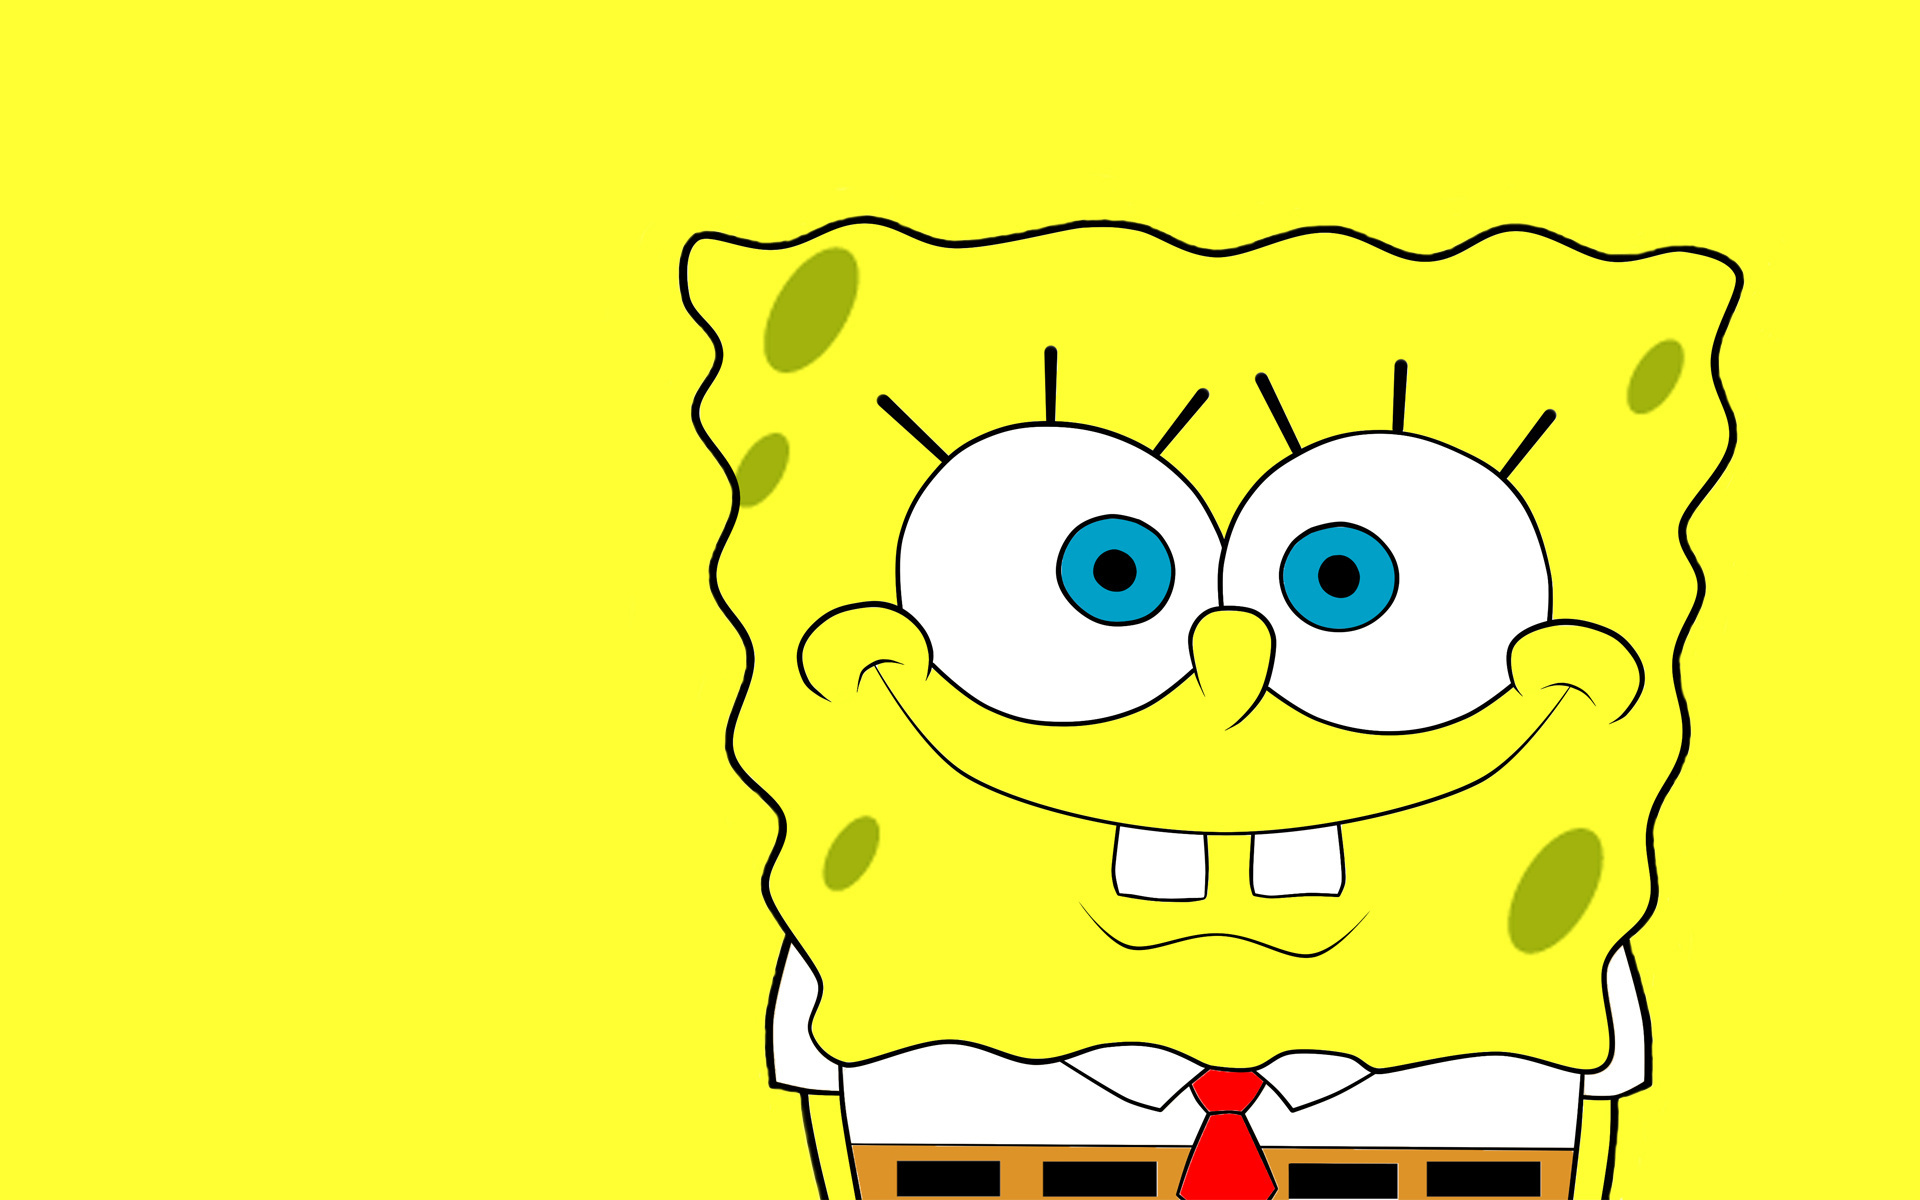 ... Wallpaper Spongebob Squarepants ...